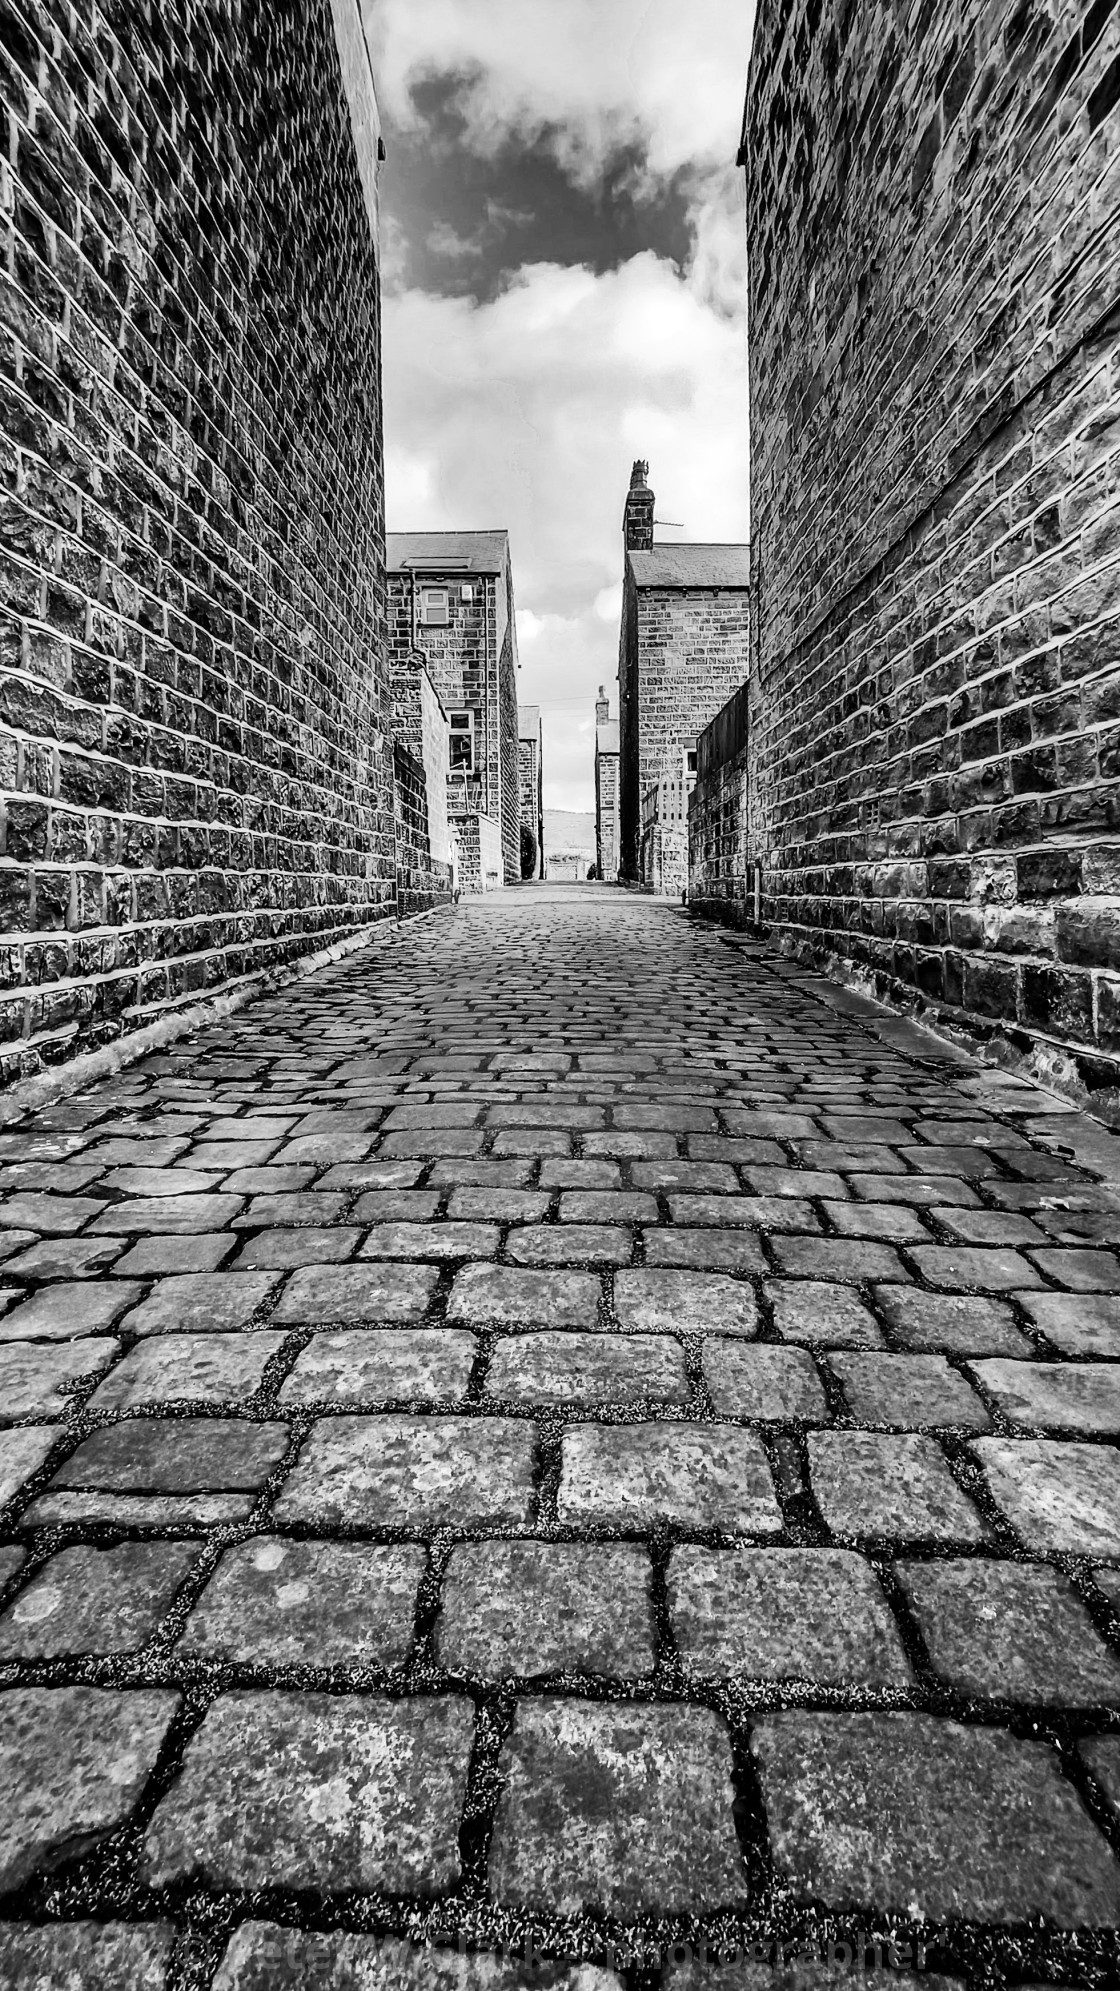 """""""Stone Setts in Passage. Silsden, Cobbydale, Yorkshire, England. Photographed 18th February 2021. Monochrome."""" stock image"""